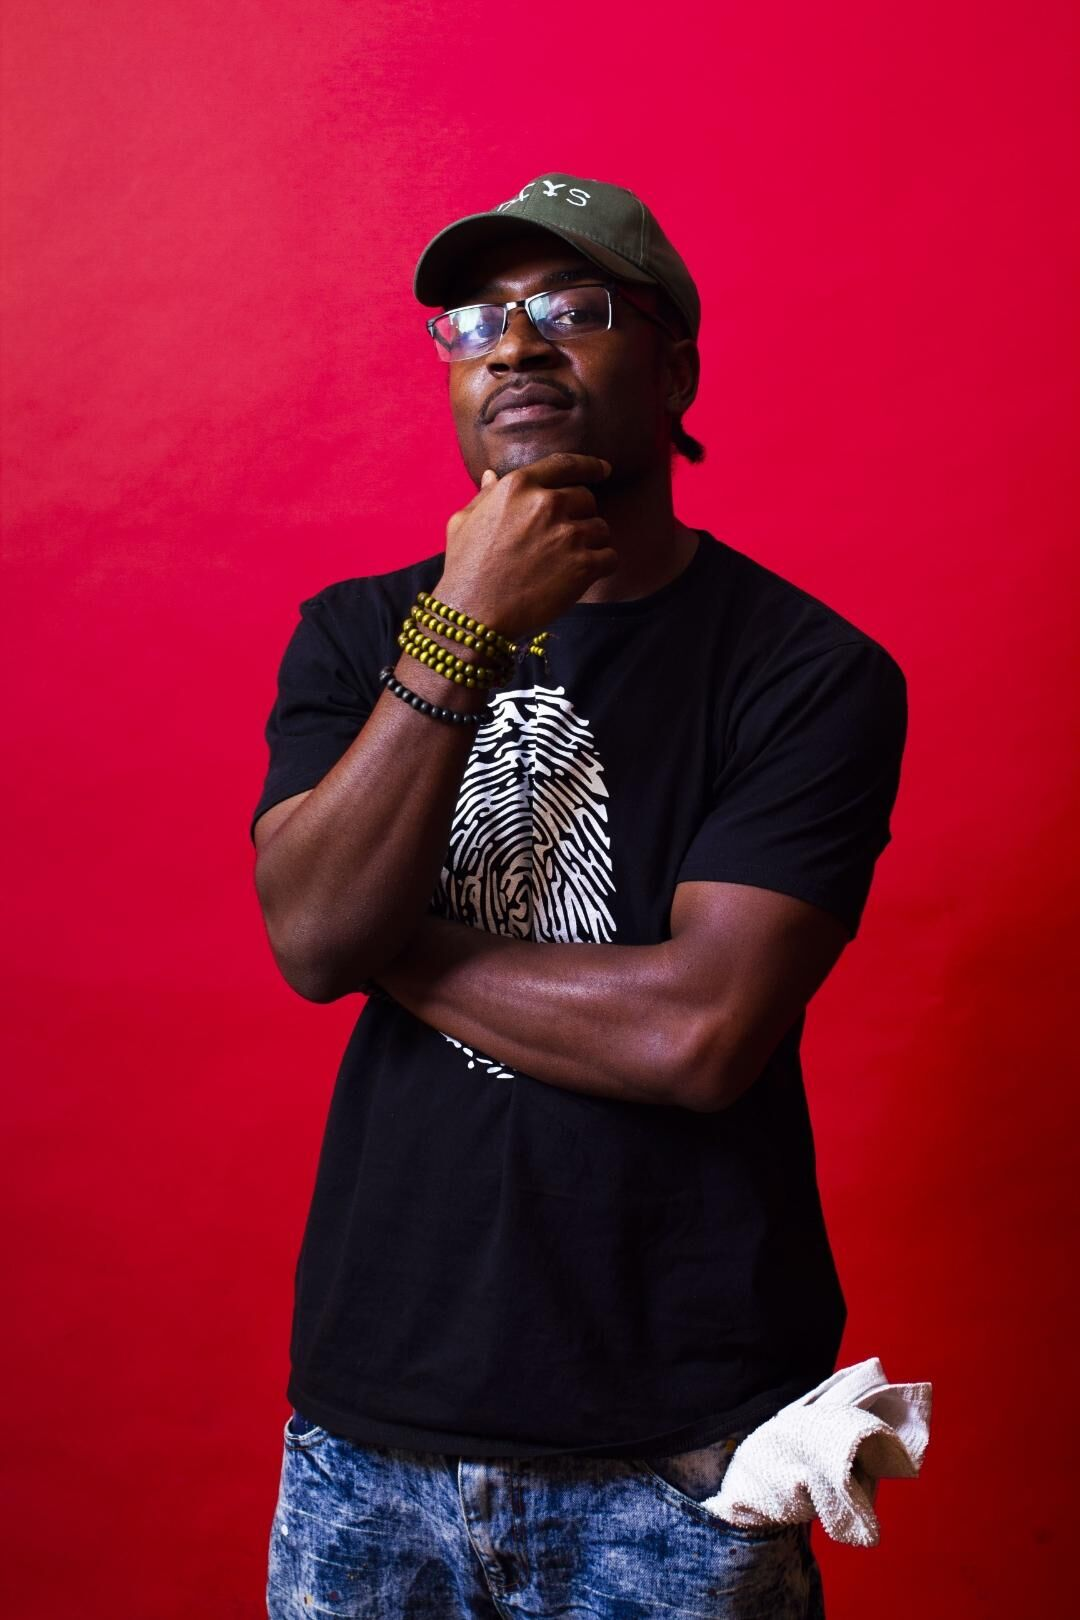 KeepitSwain gives a peek behind the curtain for his debut album, Coming Home